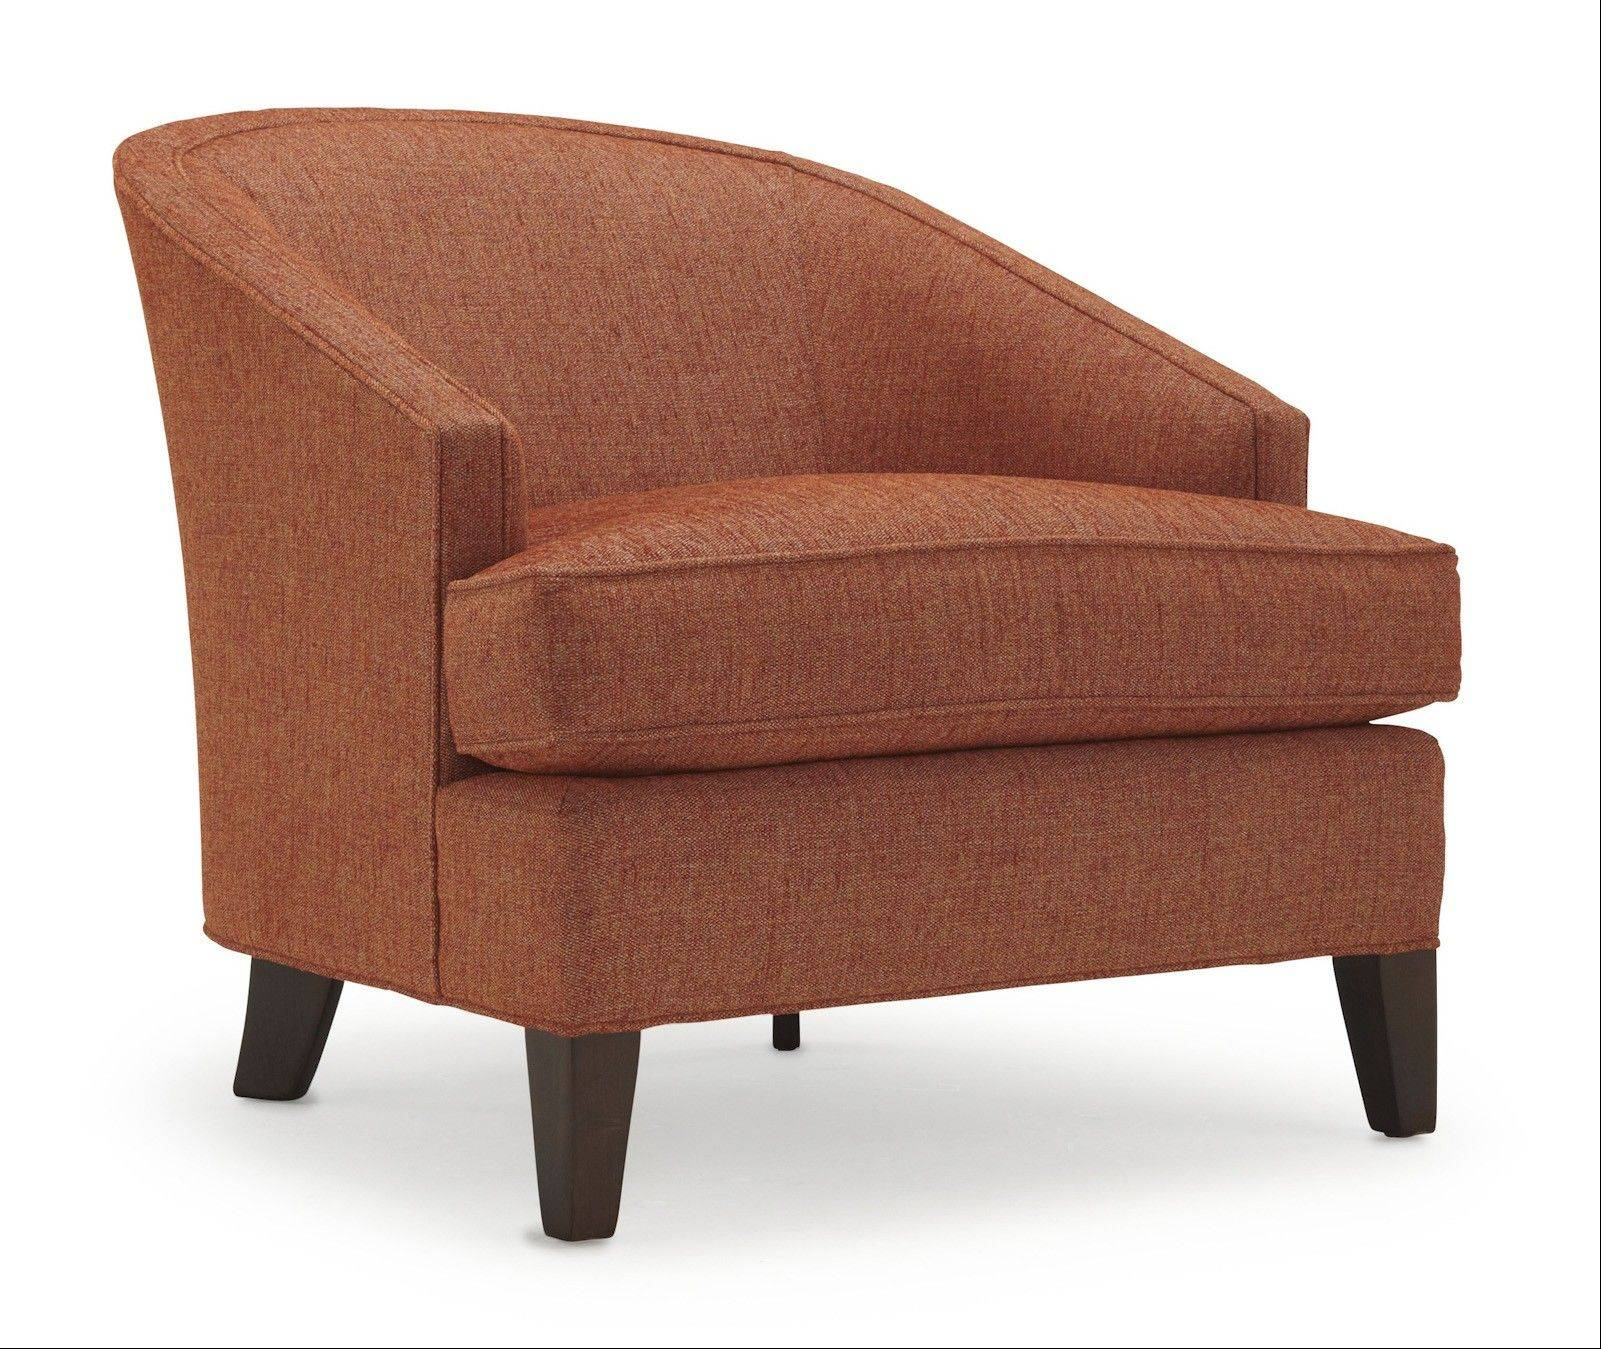 The Diane Guest Chair is part of The Good Wife collection by Mitchell Gold and Bob Williams.